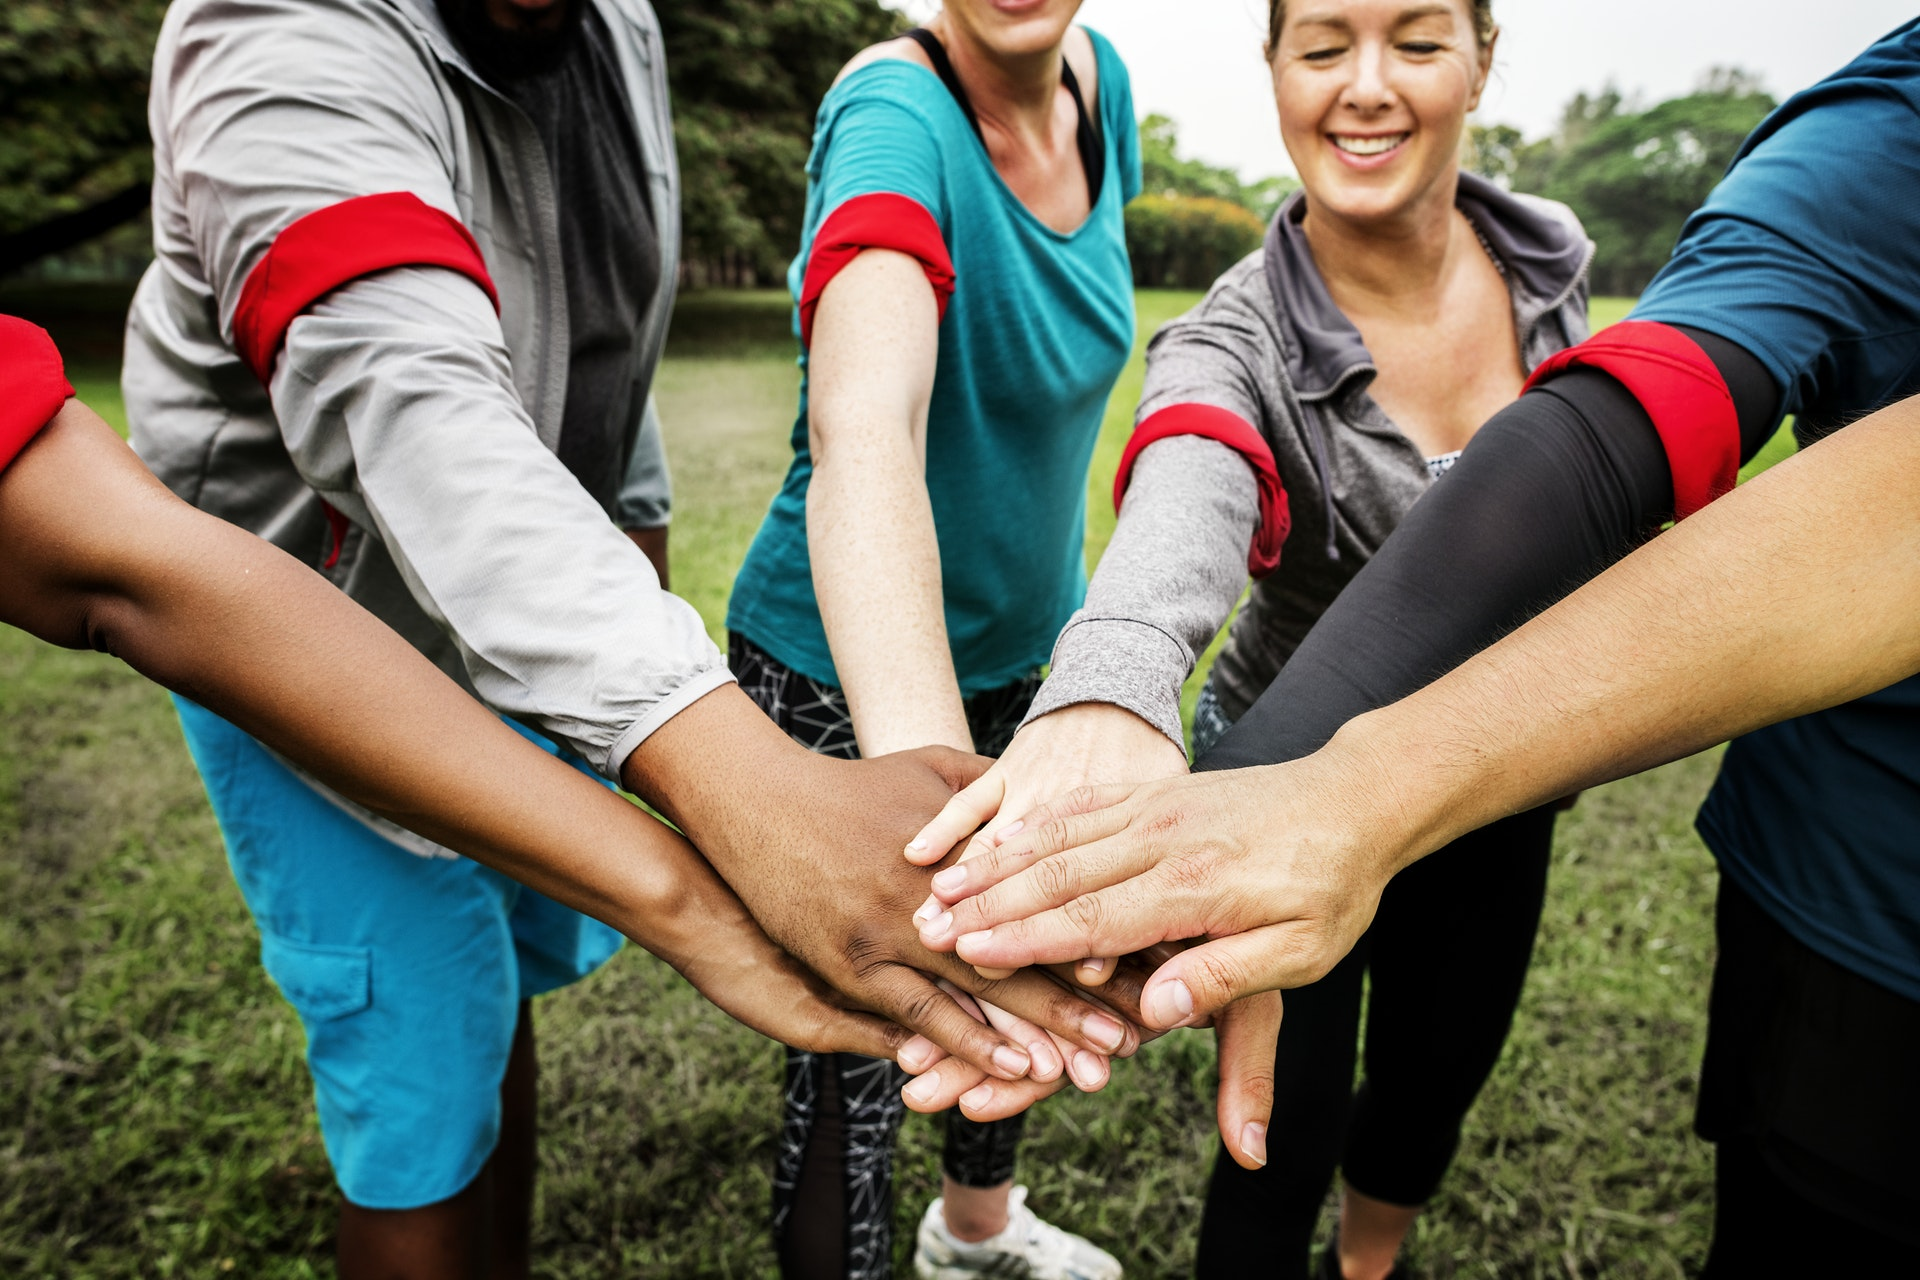 Team Building Activities To Spread Fun And Positivity At Work